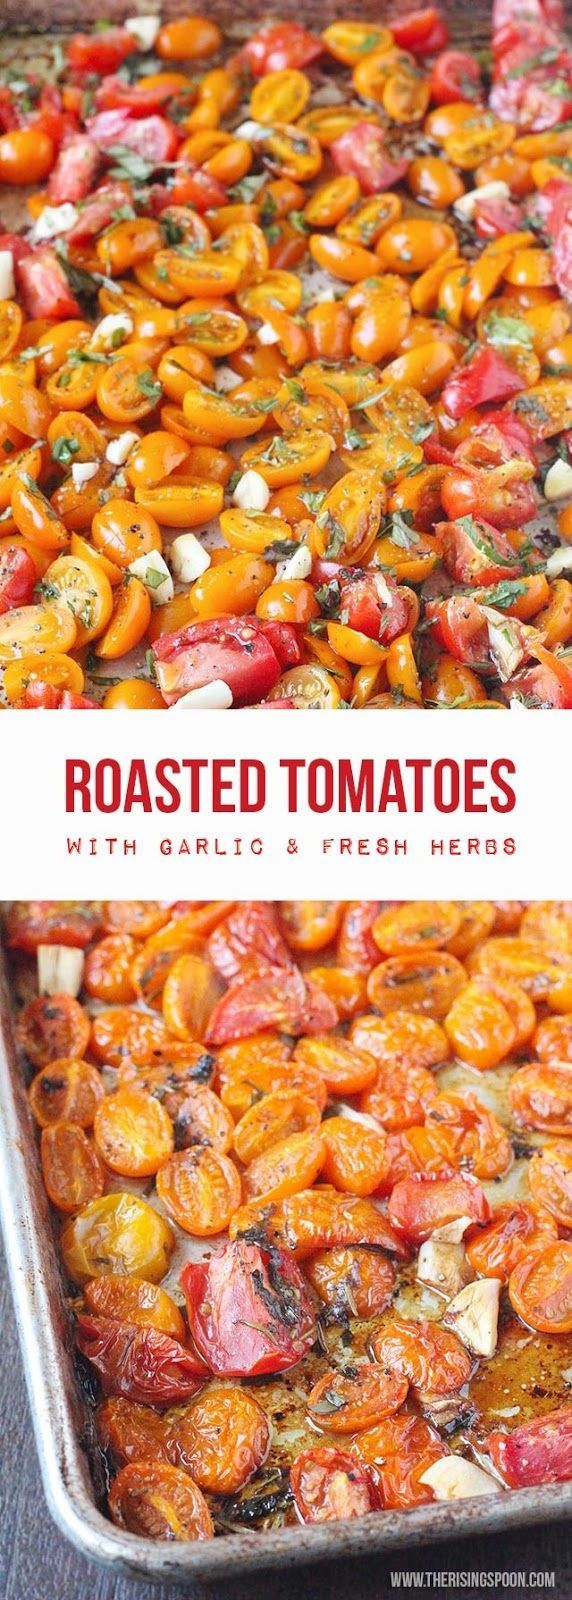 Fresh tomatoes roasted with herbs, garlic, olive oil, balsamic vinegar & seasonings. Roasting the tomatoes concentrates their sweetness and helps preserve them if you're going to freeze them to use in the winter months.   Real Food Recipe   Vegan   Paleo   Whole30   Summer   Side Dish  